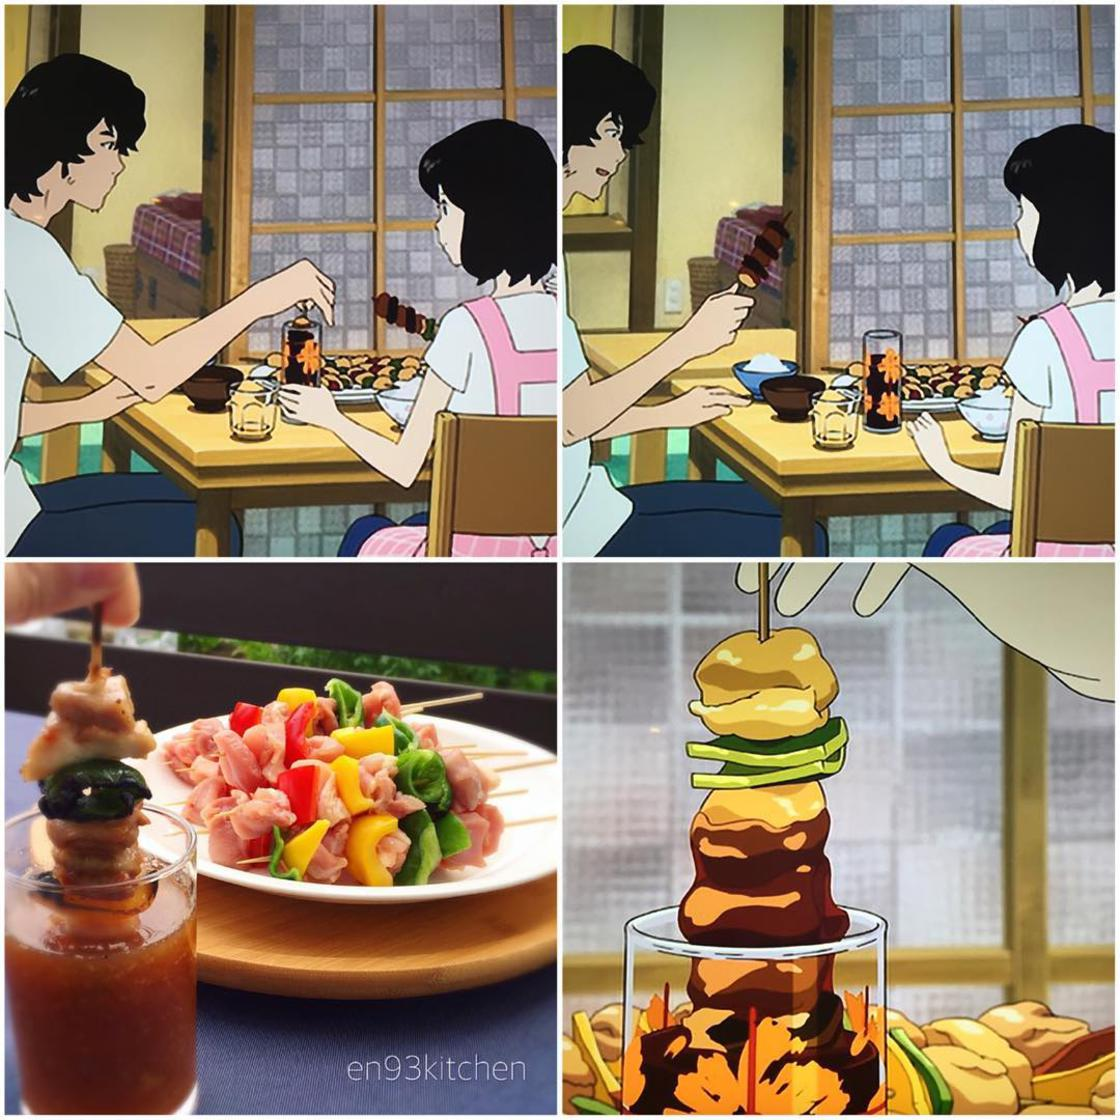 Ghibli Food – This girl is recreating the food from Miyazaki's movies